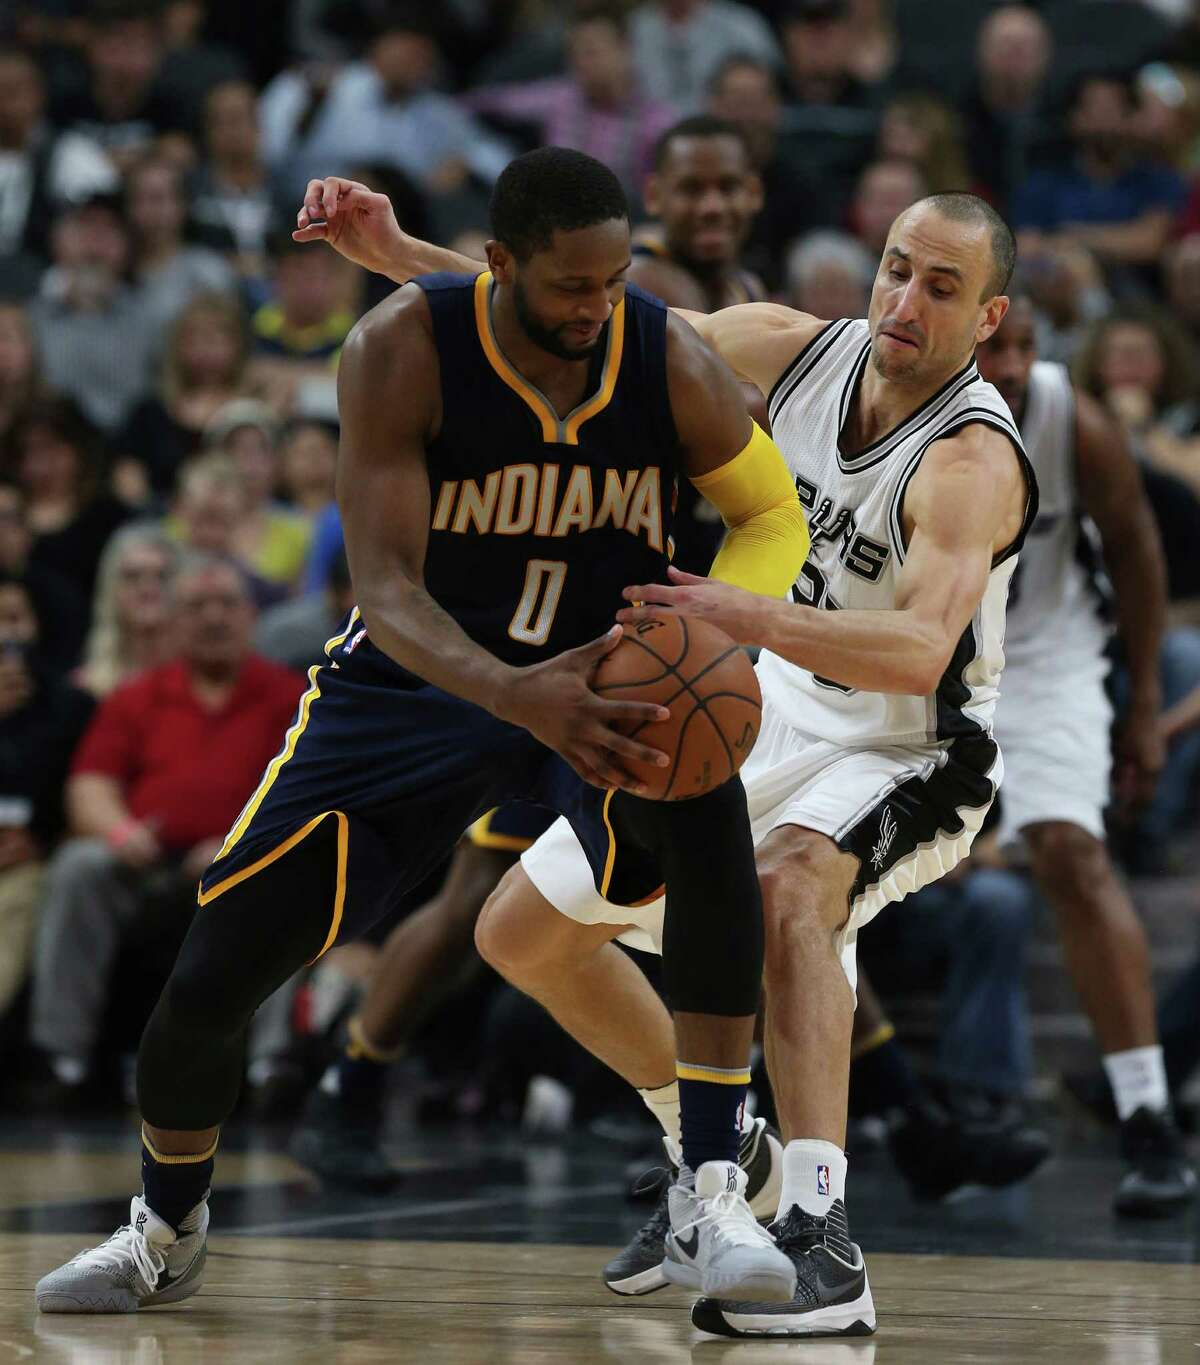 Spurs' Manu Ginobili attempts a steal from Indiana Pacers' C.J. Miles during the second half at the AT&T Center on Dec. 21, 2015. The Spurs won, 106-92.